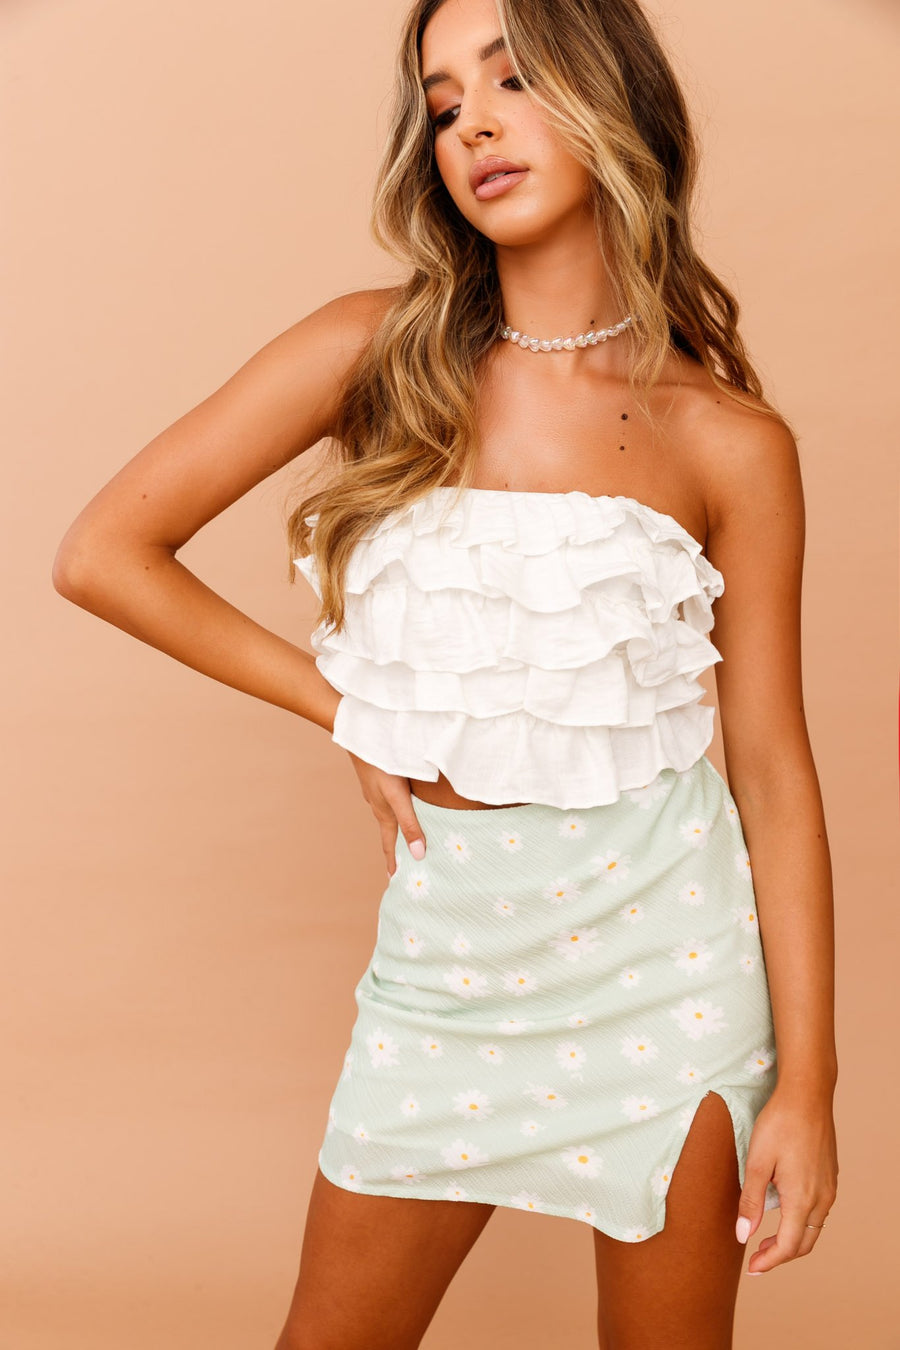 Ruffled Up Tube Top // White | Sage and Paige.?id=25072211427497